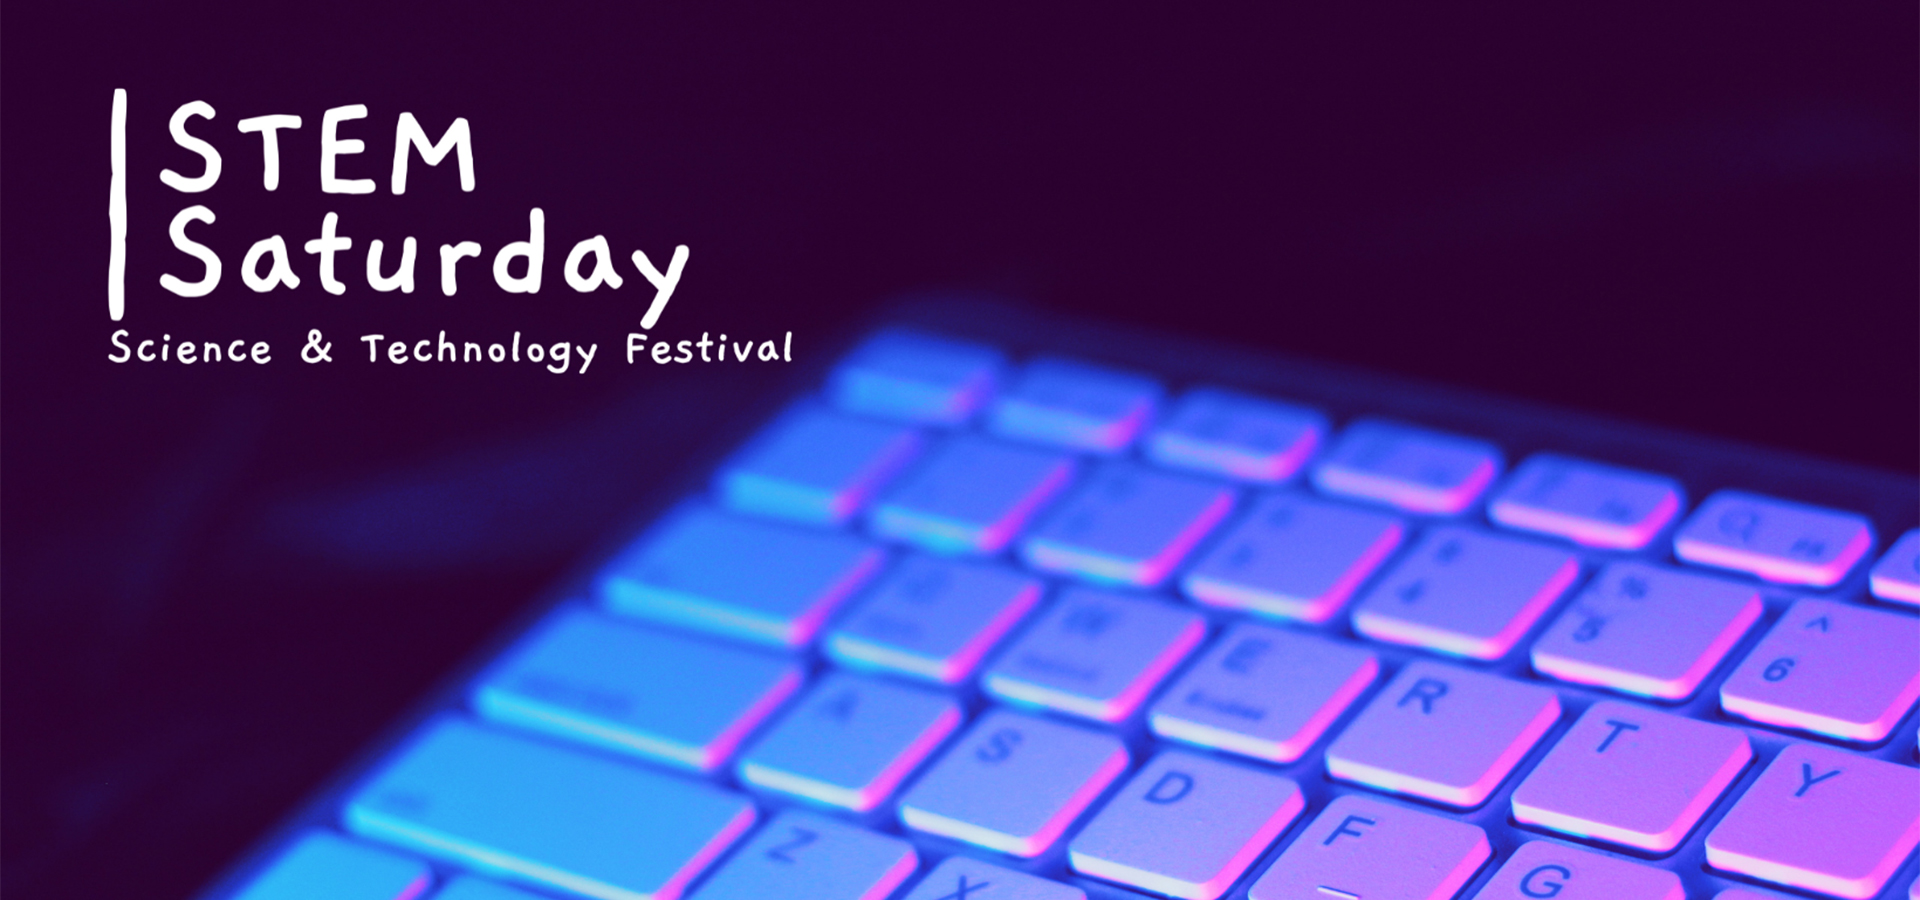 purple keyboard with Stem Saturday written out